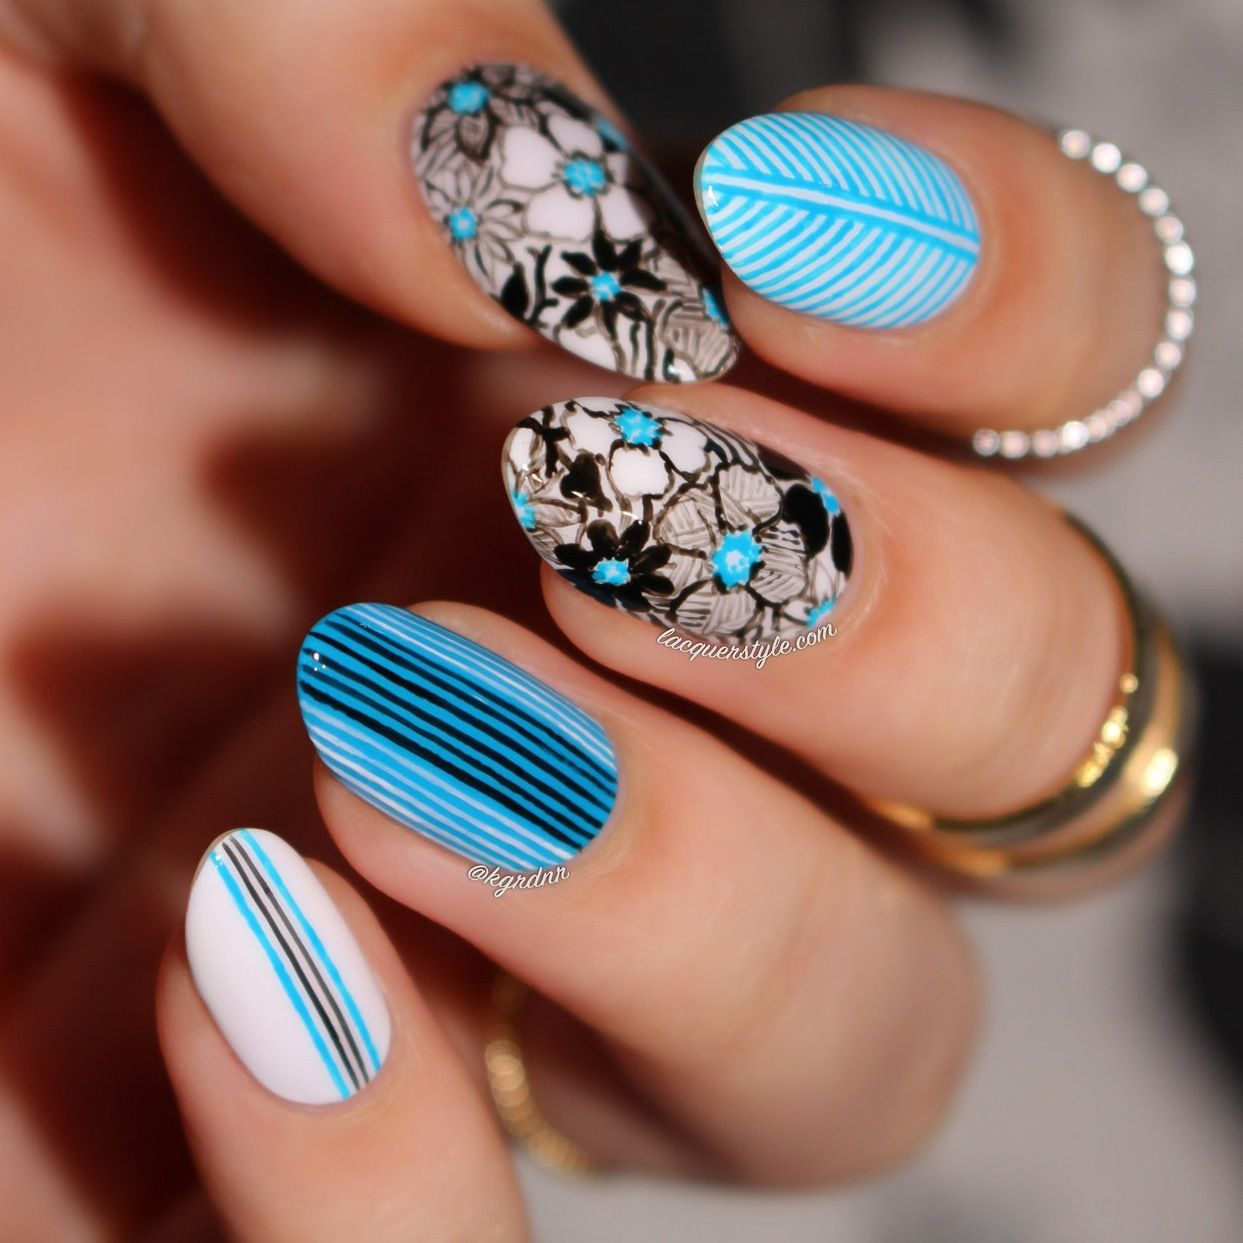 Cool blue nails